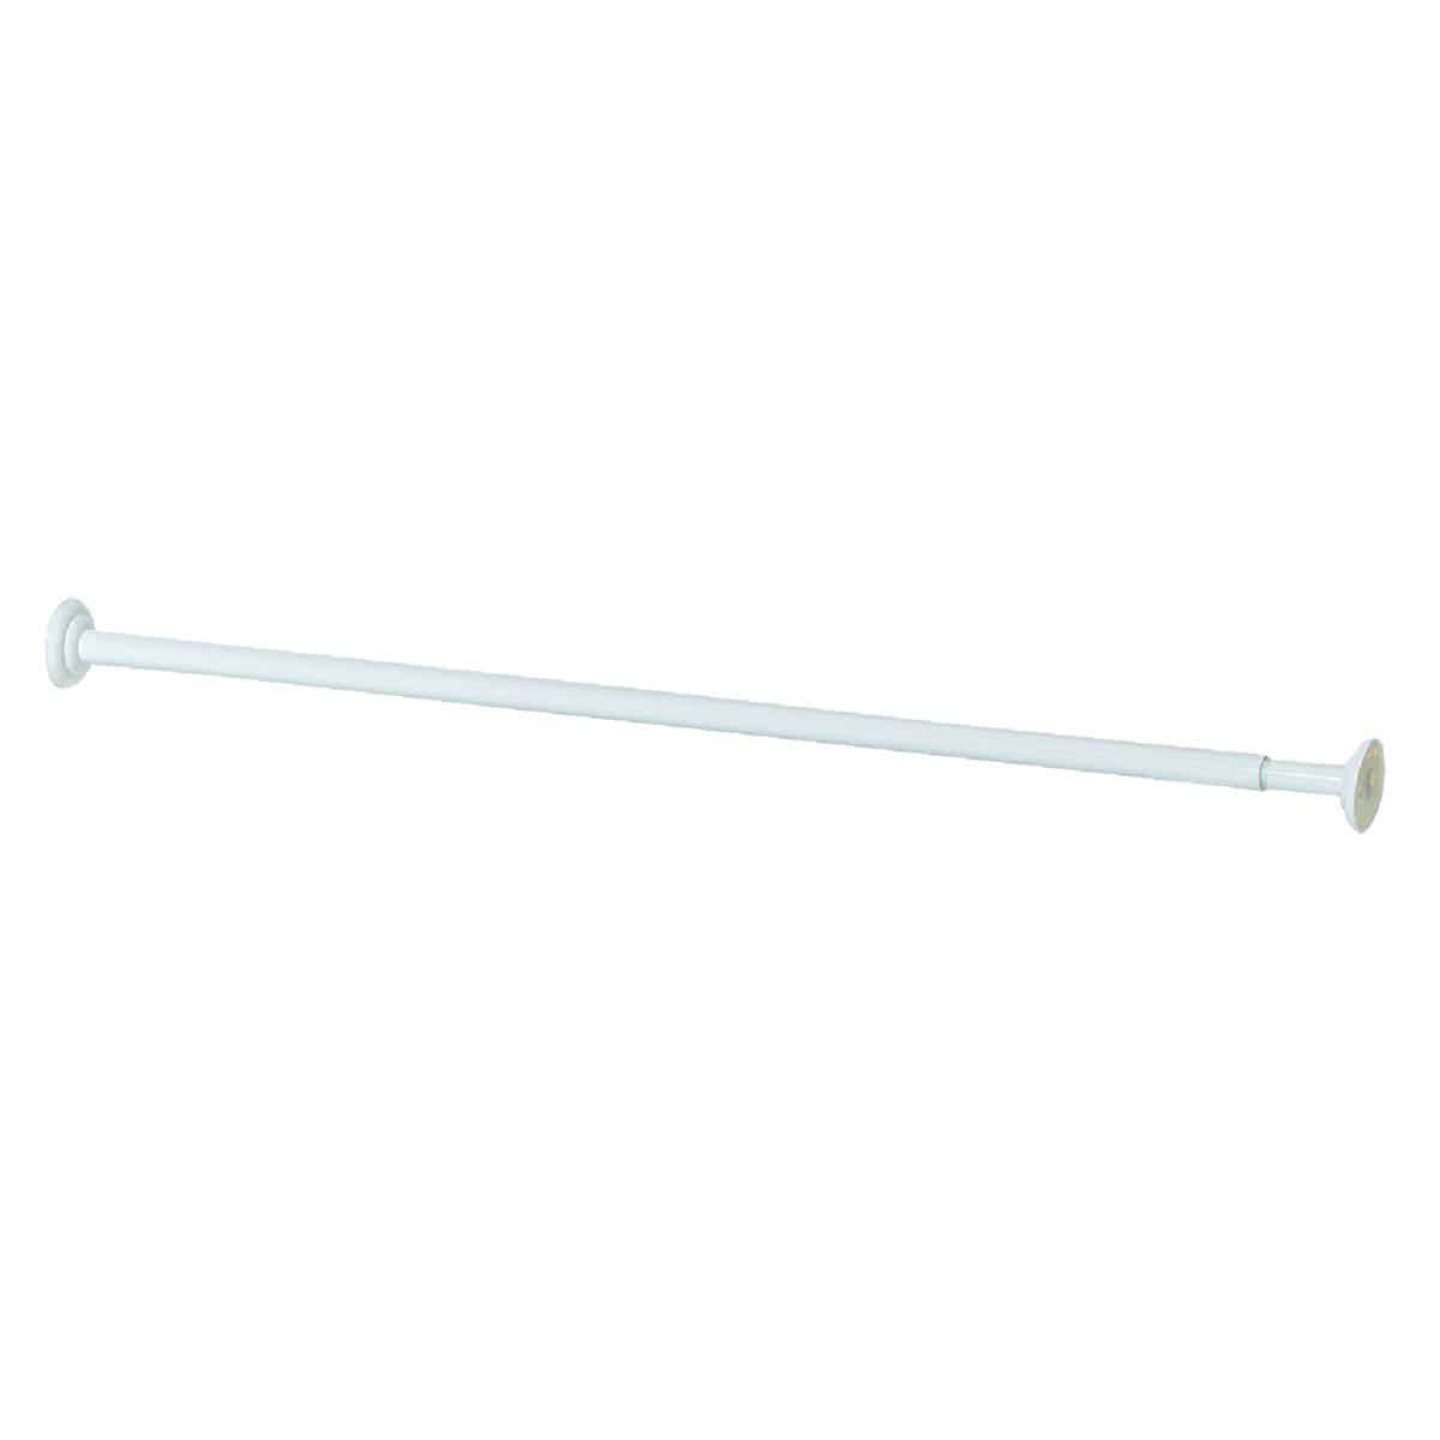 Zenith Straight 41 In. To 72 In. Adjustable Fixed Shower Rod in White Image 1